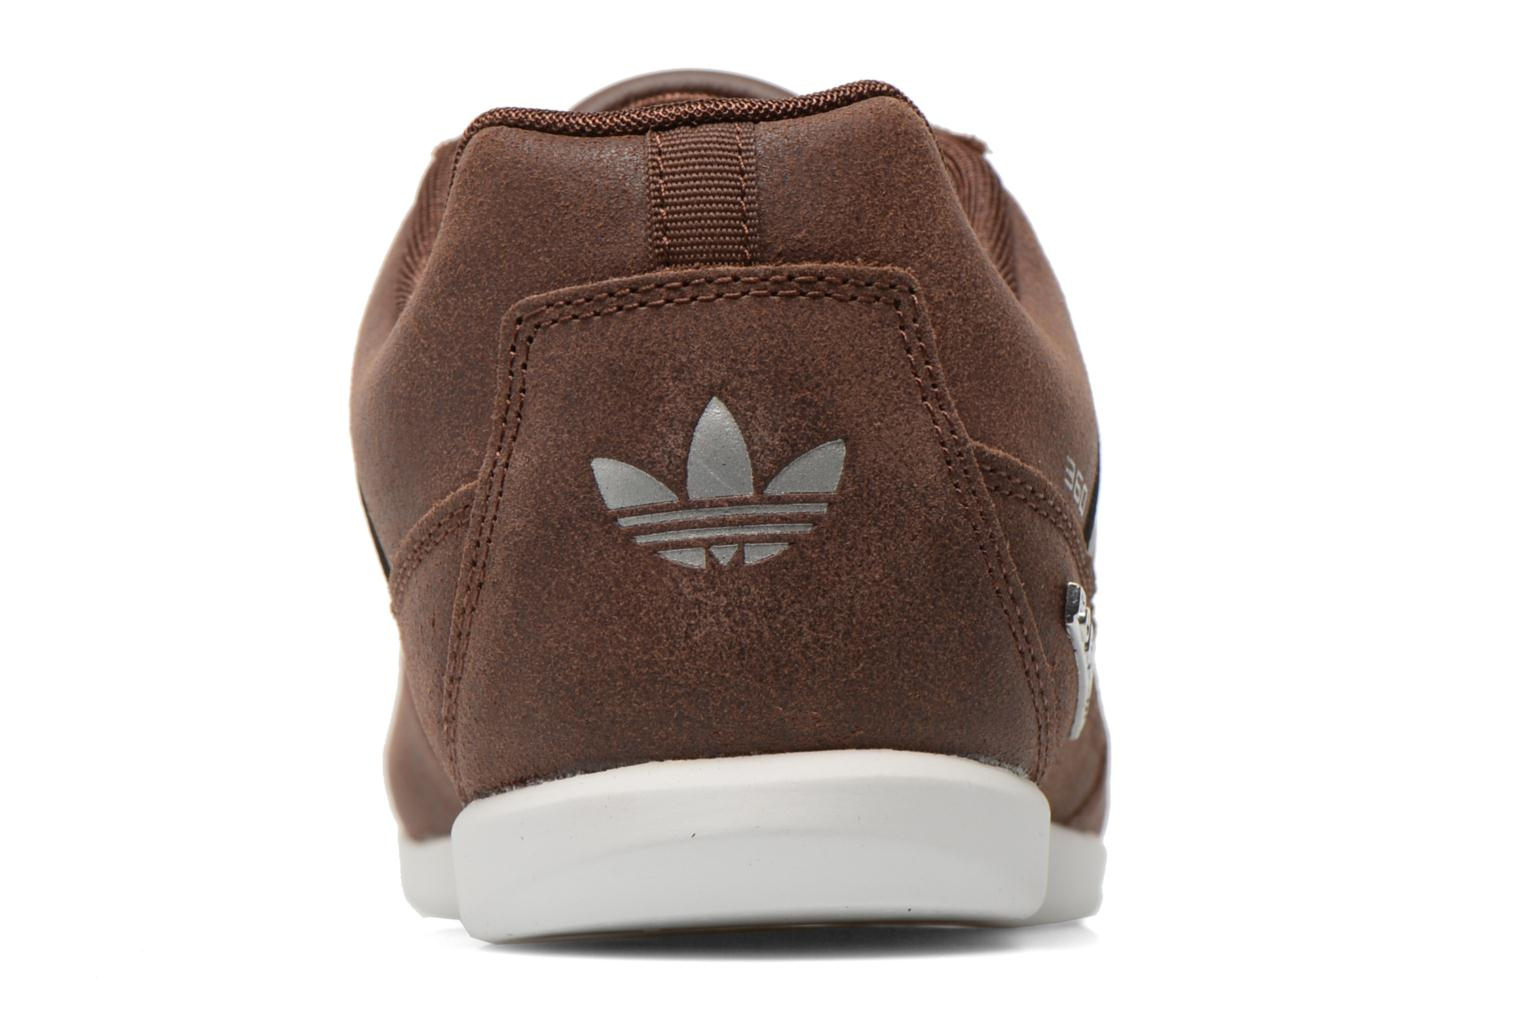 Trainers Adidas Originals Porsche 360 1.2 Suede Brown view from the right